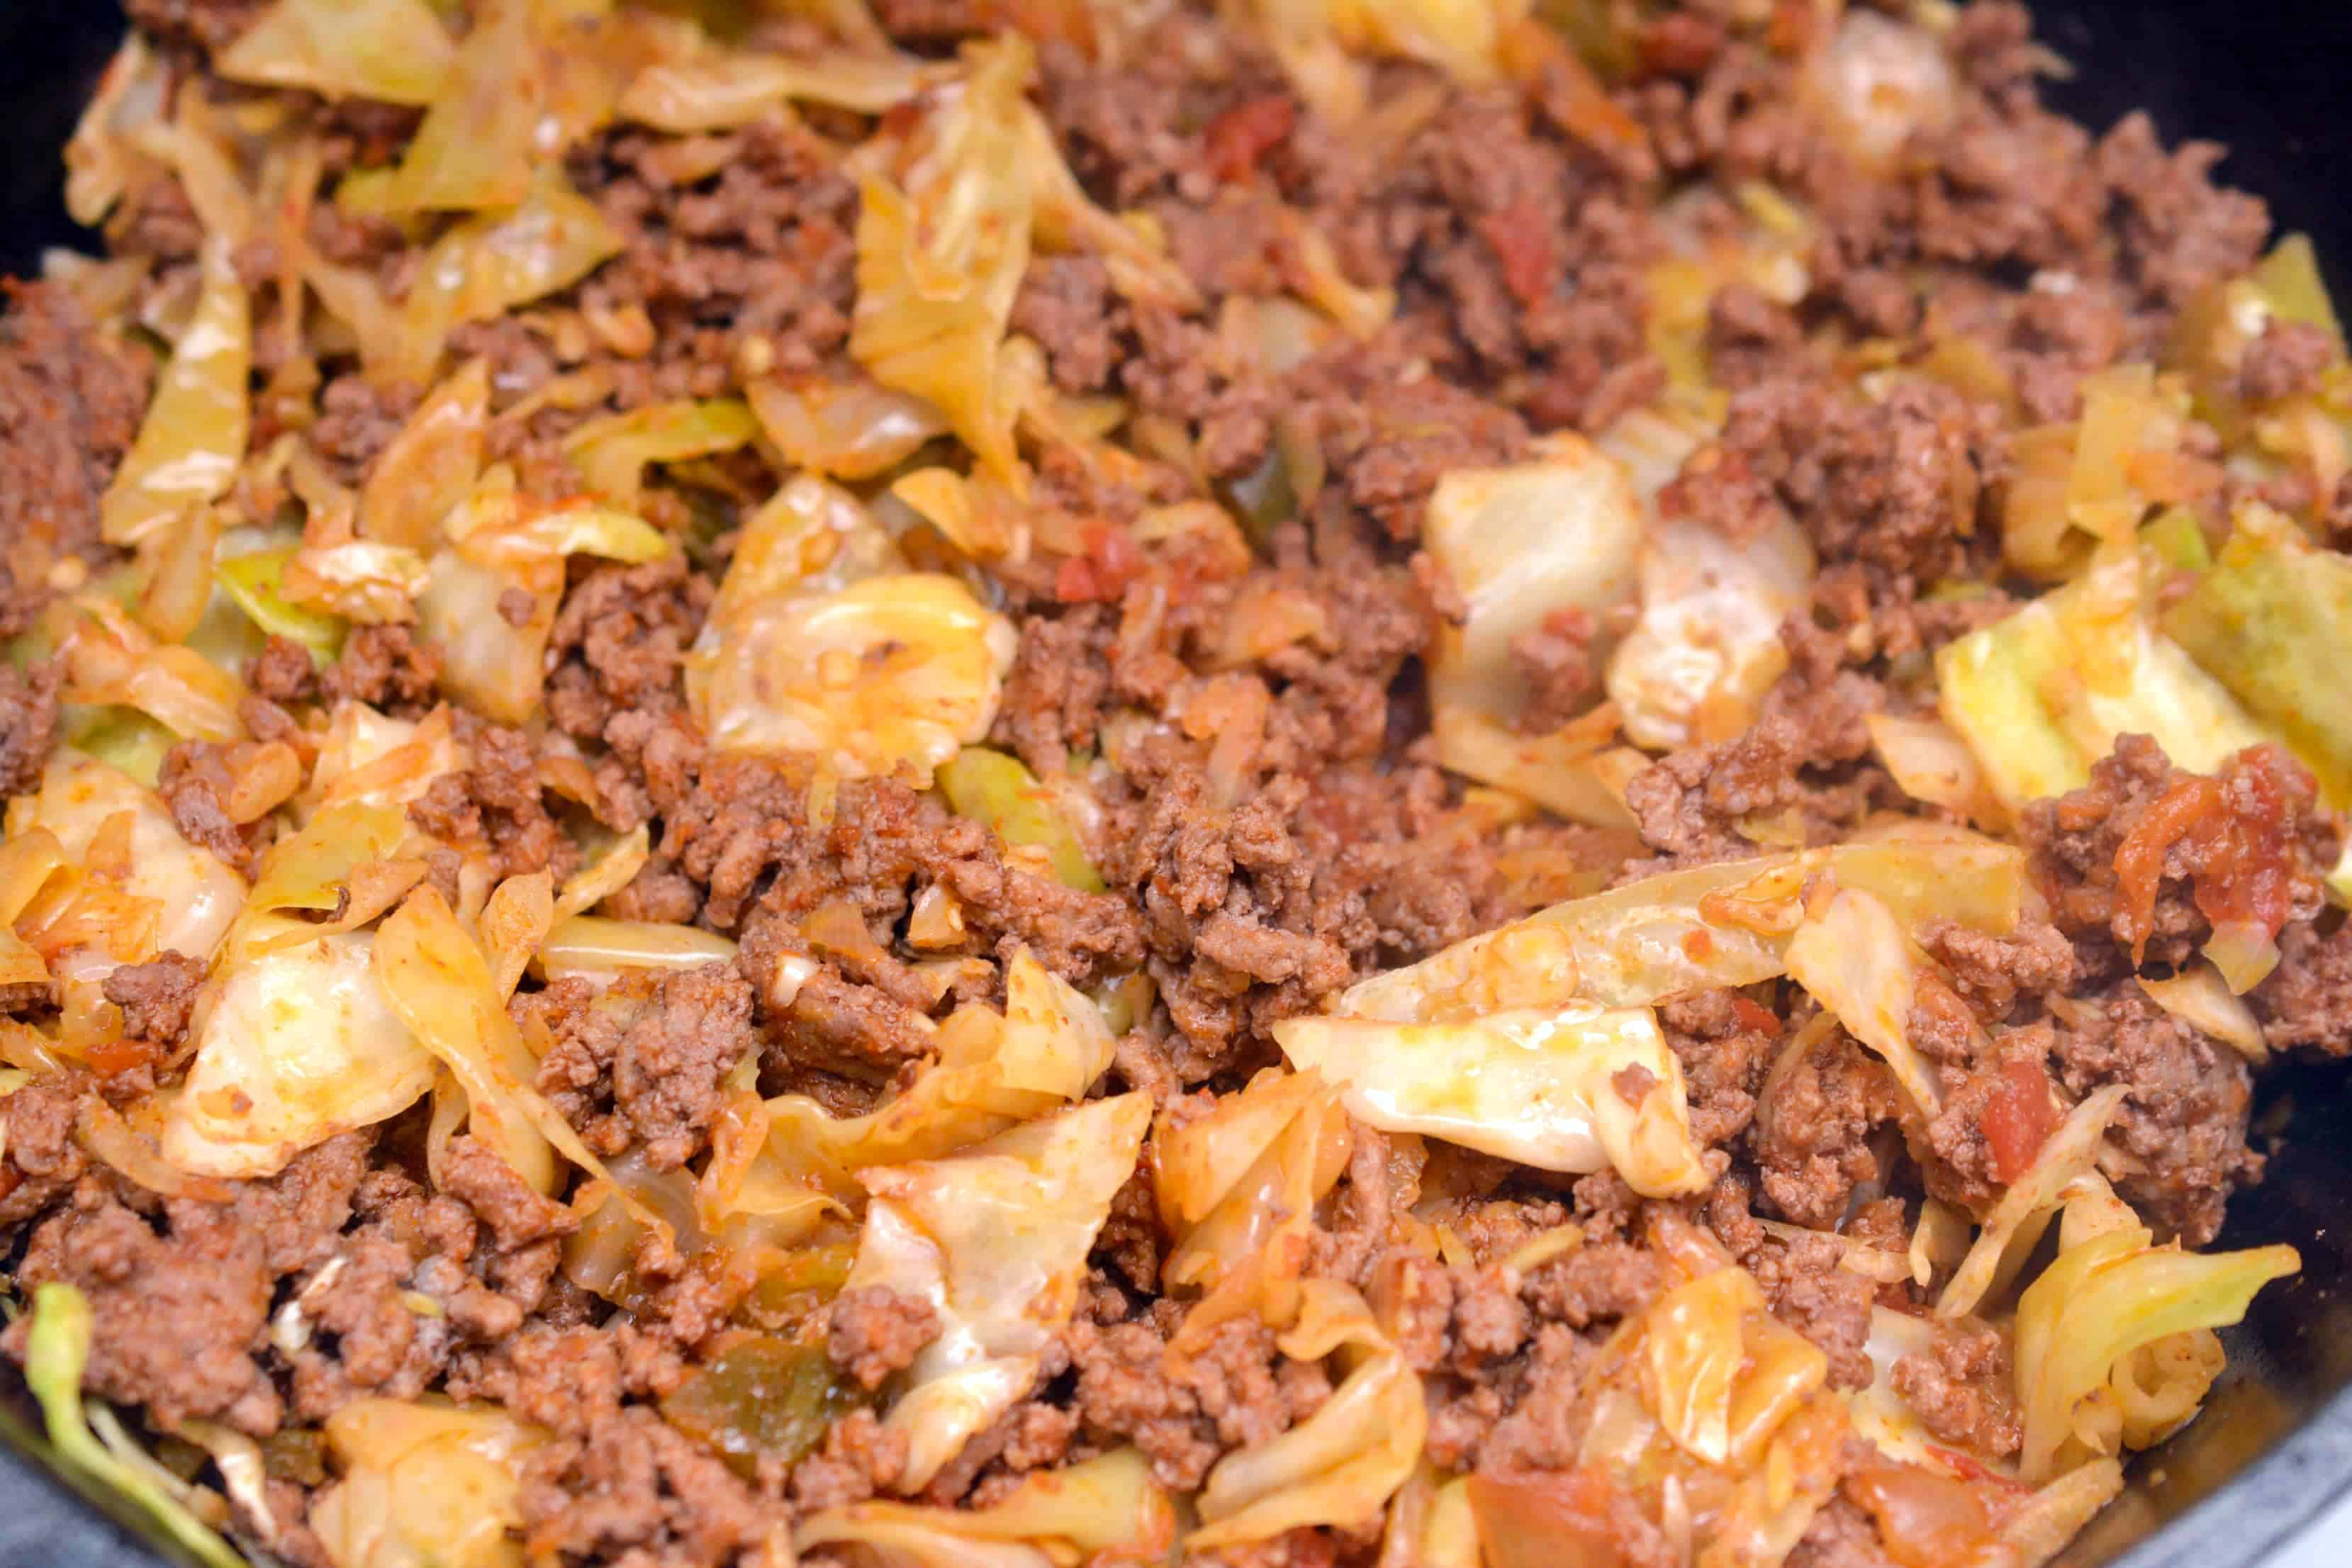 taco ground beef and cabbage in a skillet